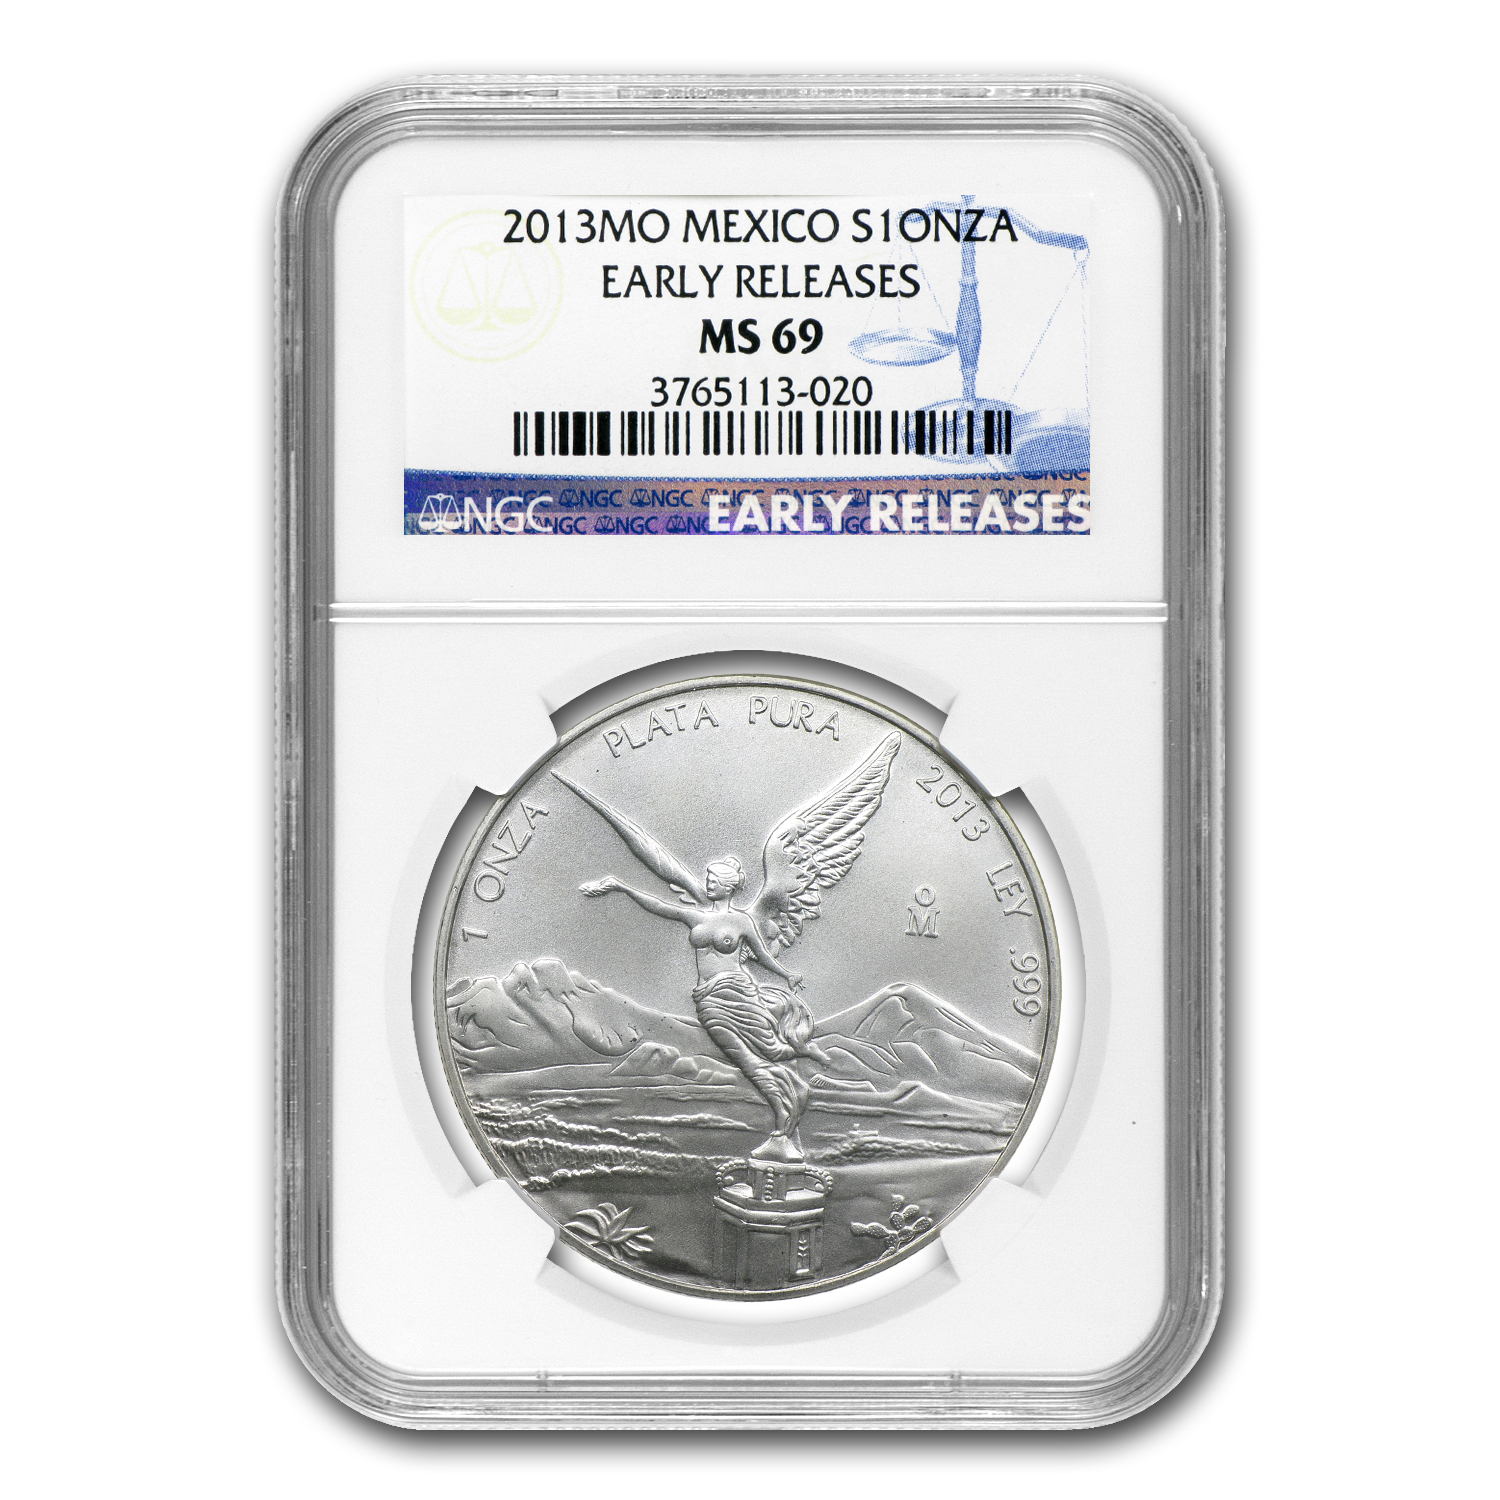 2013 Mexico 1 oz Silver Libertad MS-69 NGC (Early Release)